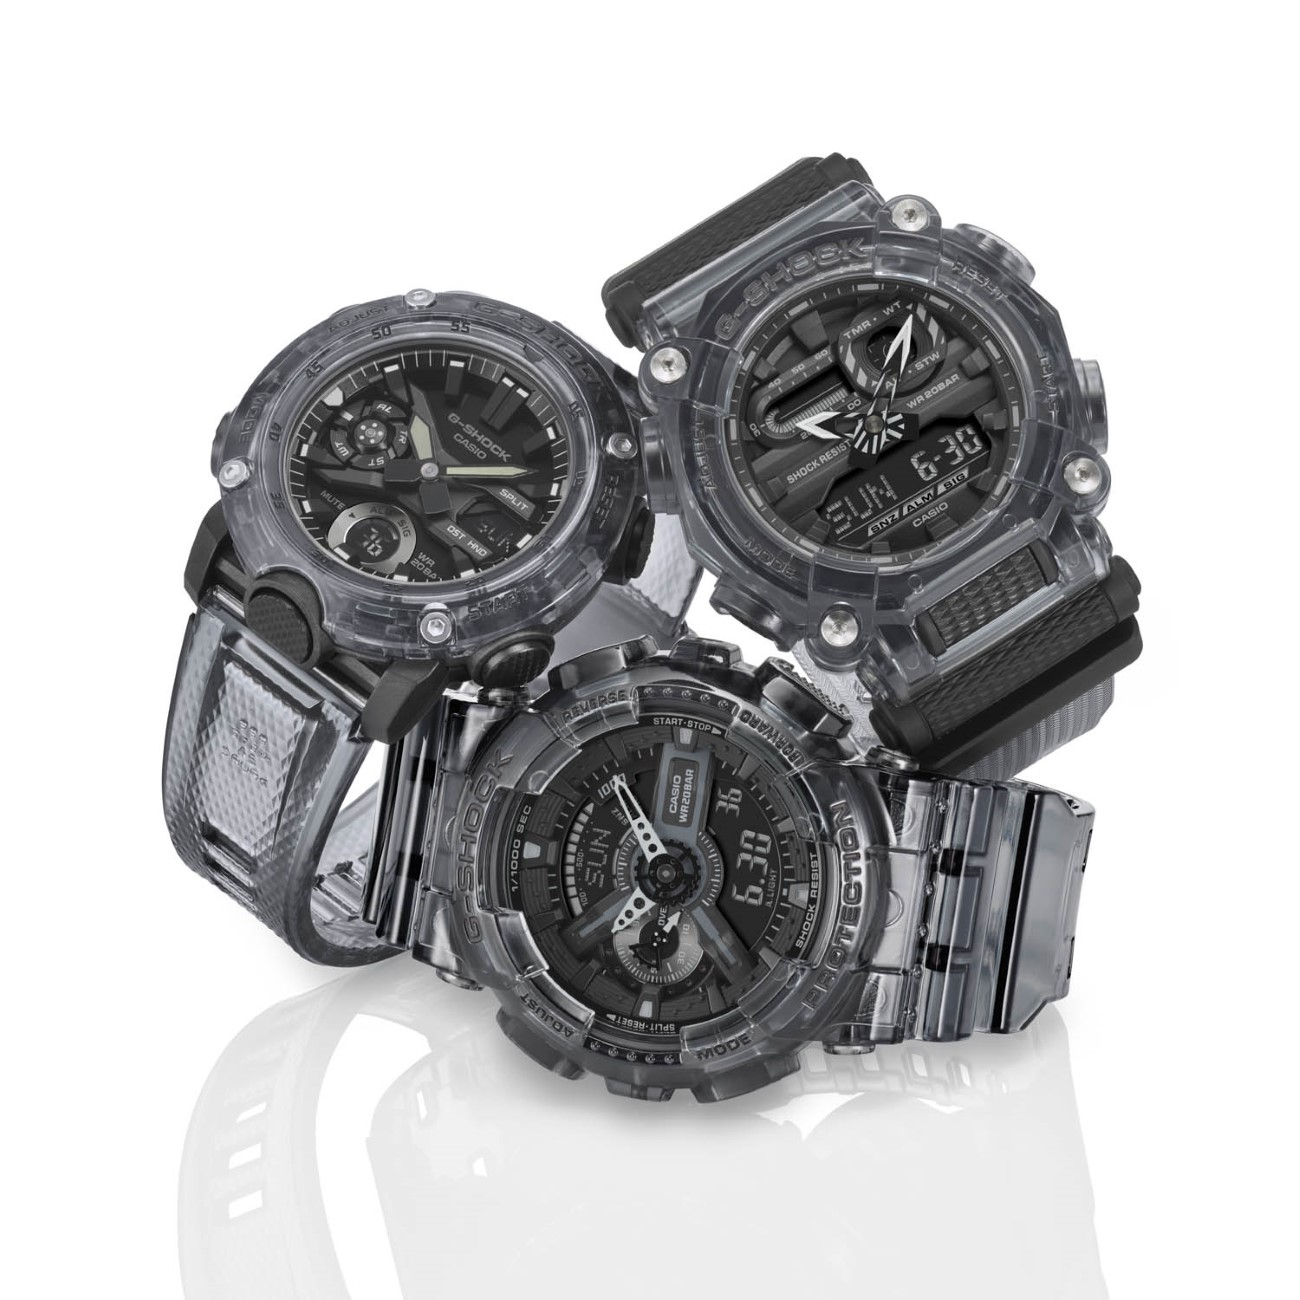 G-SHOCK Skeleton Black & White